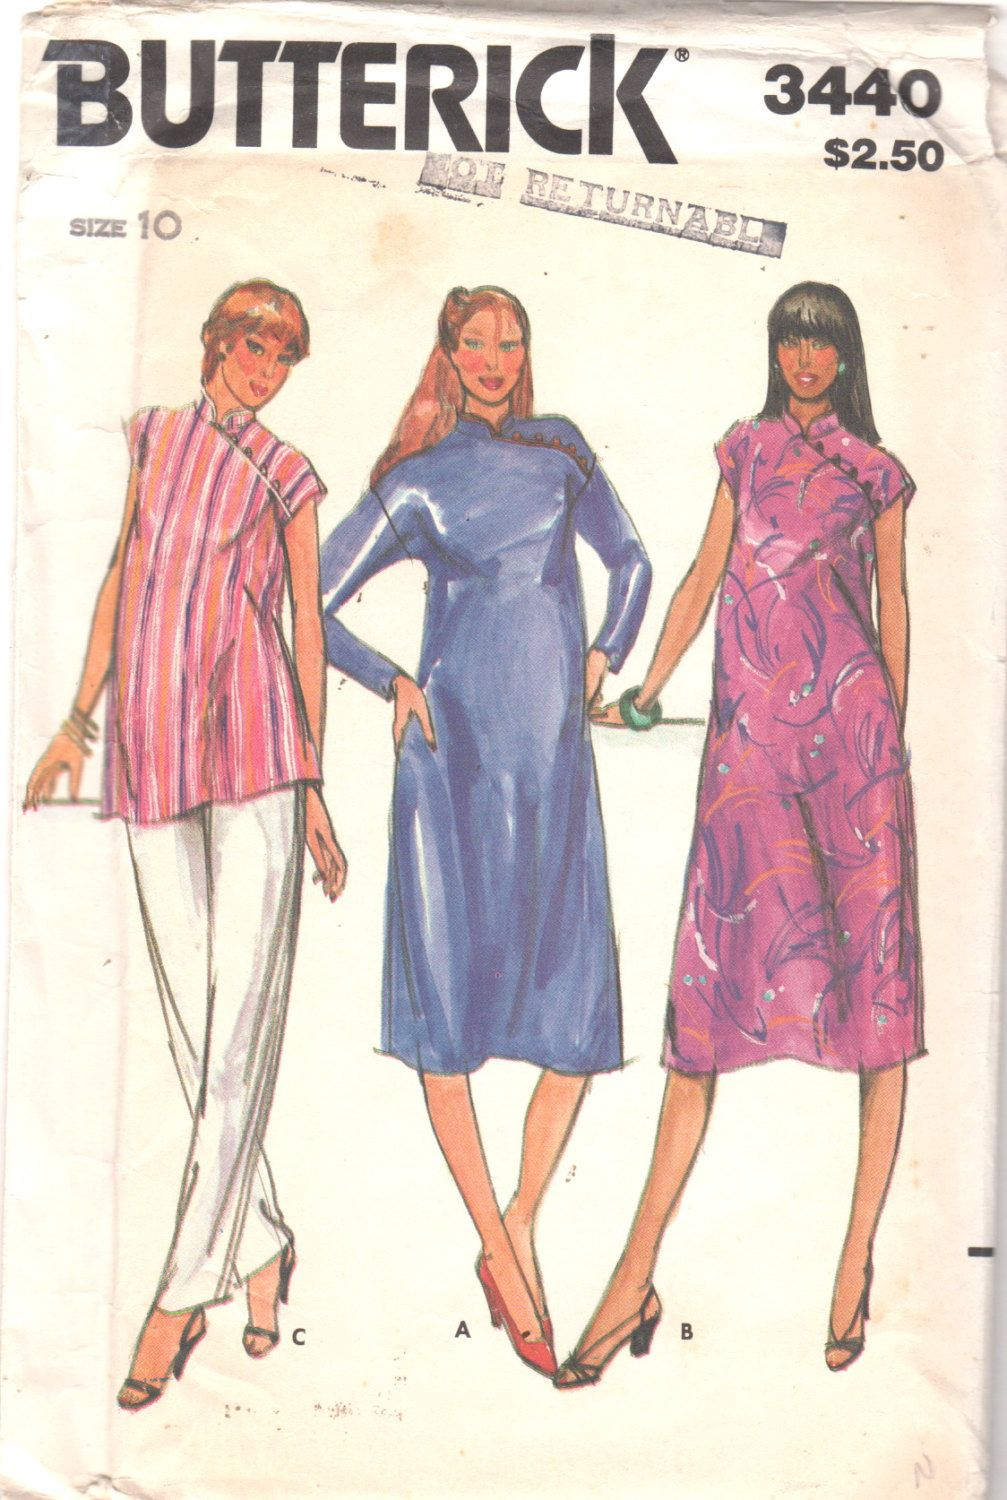 Butterick 3440 1980s misses oriental maternity dress and tunic top butterick 3440 1980s misses oriental maternity dress and tunic top pattern womens vintage chinese sewing pattern size 10 bust 32 uncut jeuxipadfo Image collections